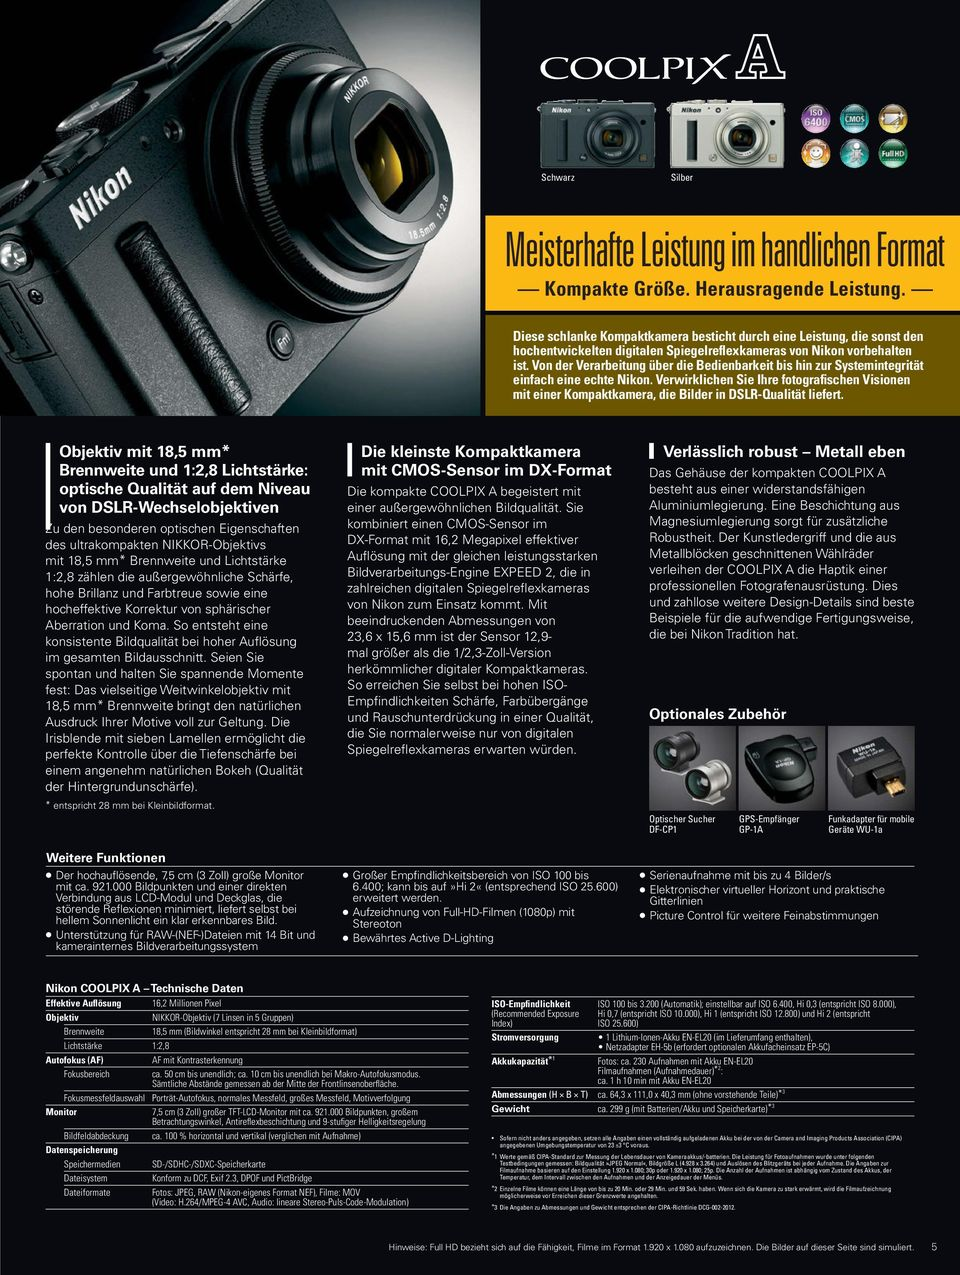 This Diese sleek, schlanke compact Kompaktkamera camera offers besticht a level durch of performance eine Leistung, usually die sonst den reserved hochentwickelten for advanced digitalen Nikon